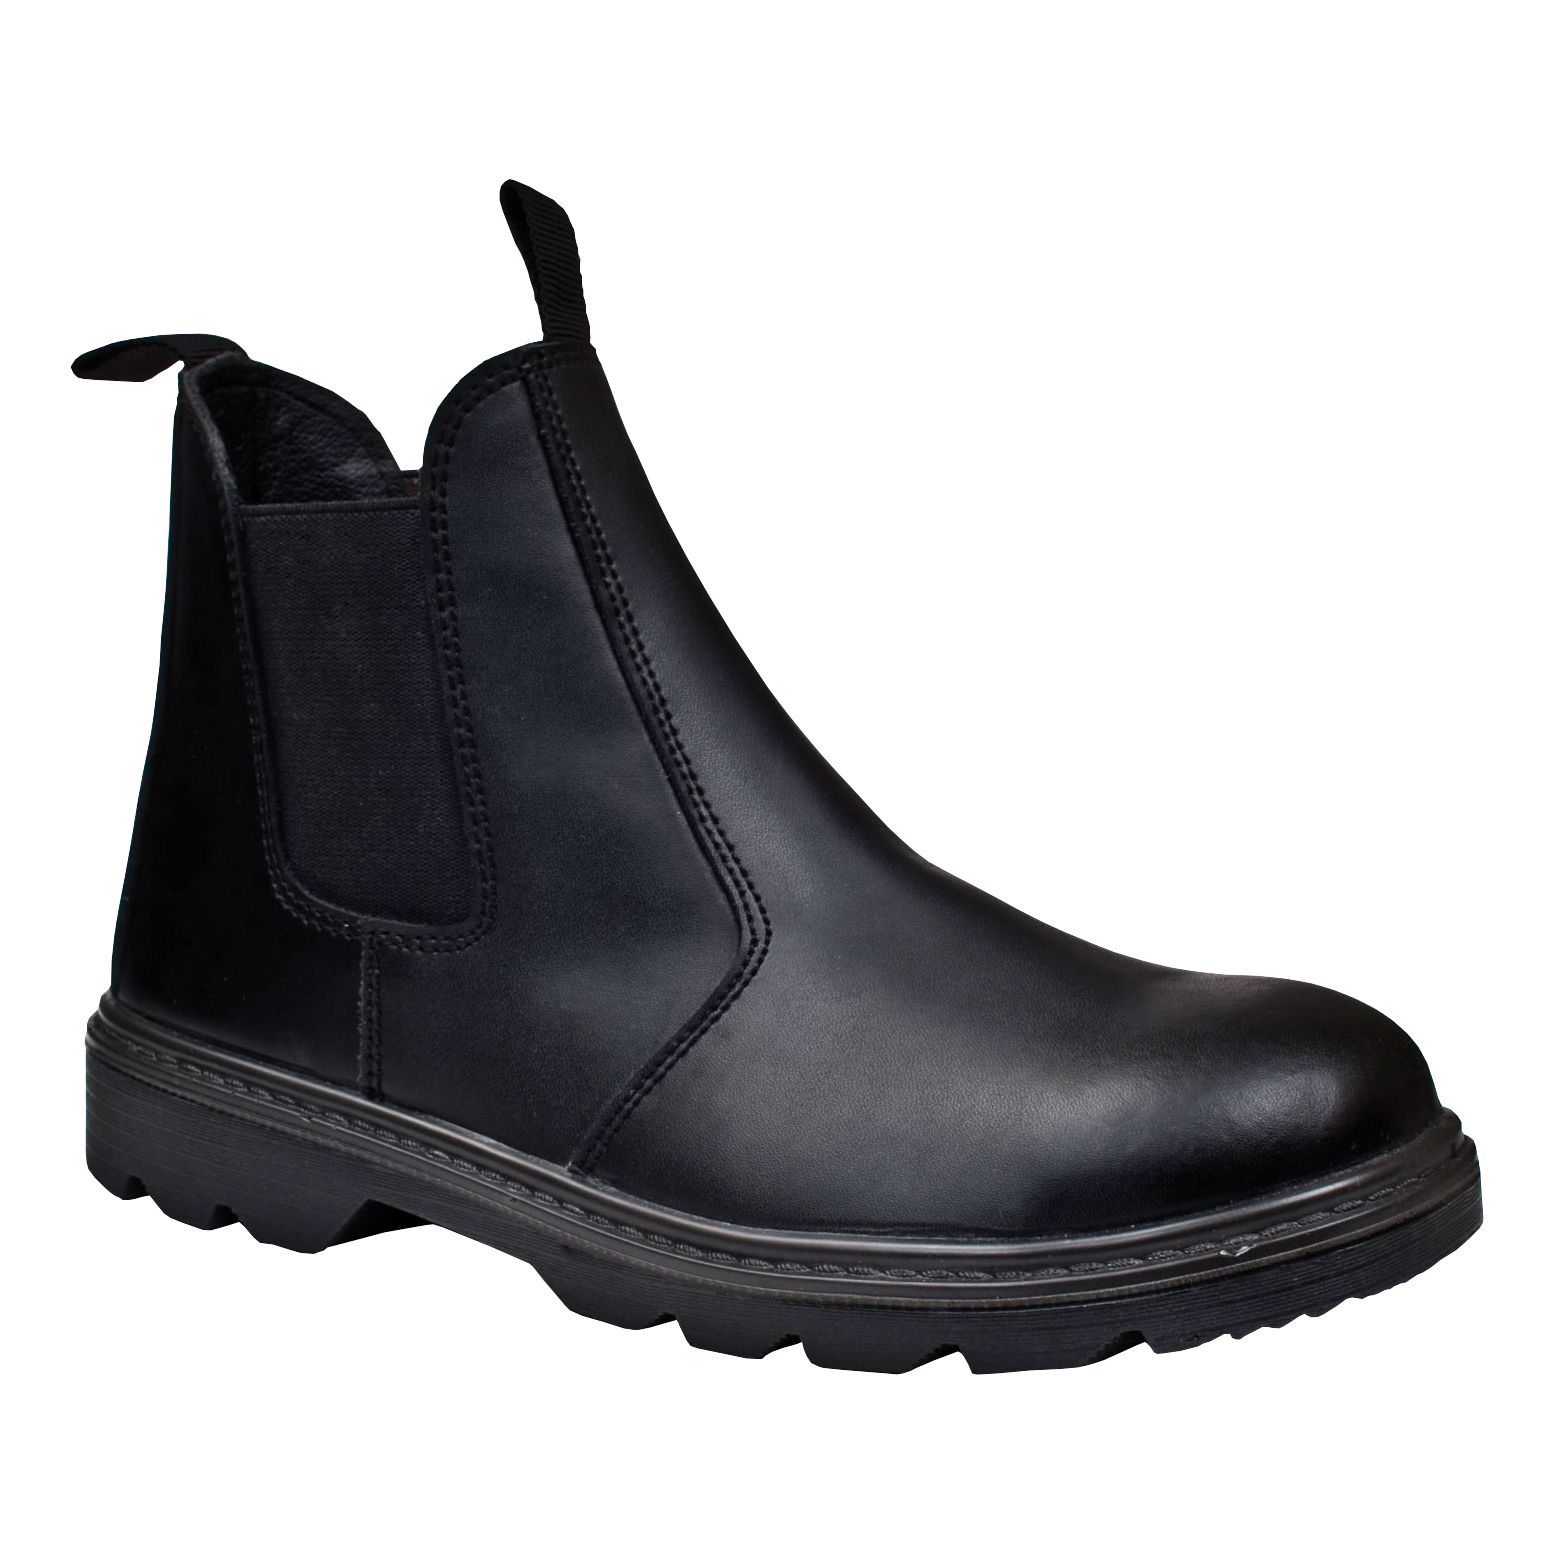 Click Footwear Dealer Boot PU/Leather Steel Toecap Size 12 Black Ref CF16BL12 Approx 3 Day Leadtime